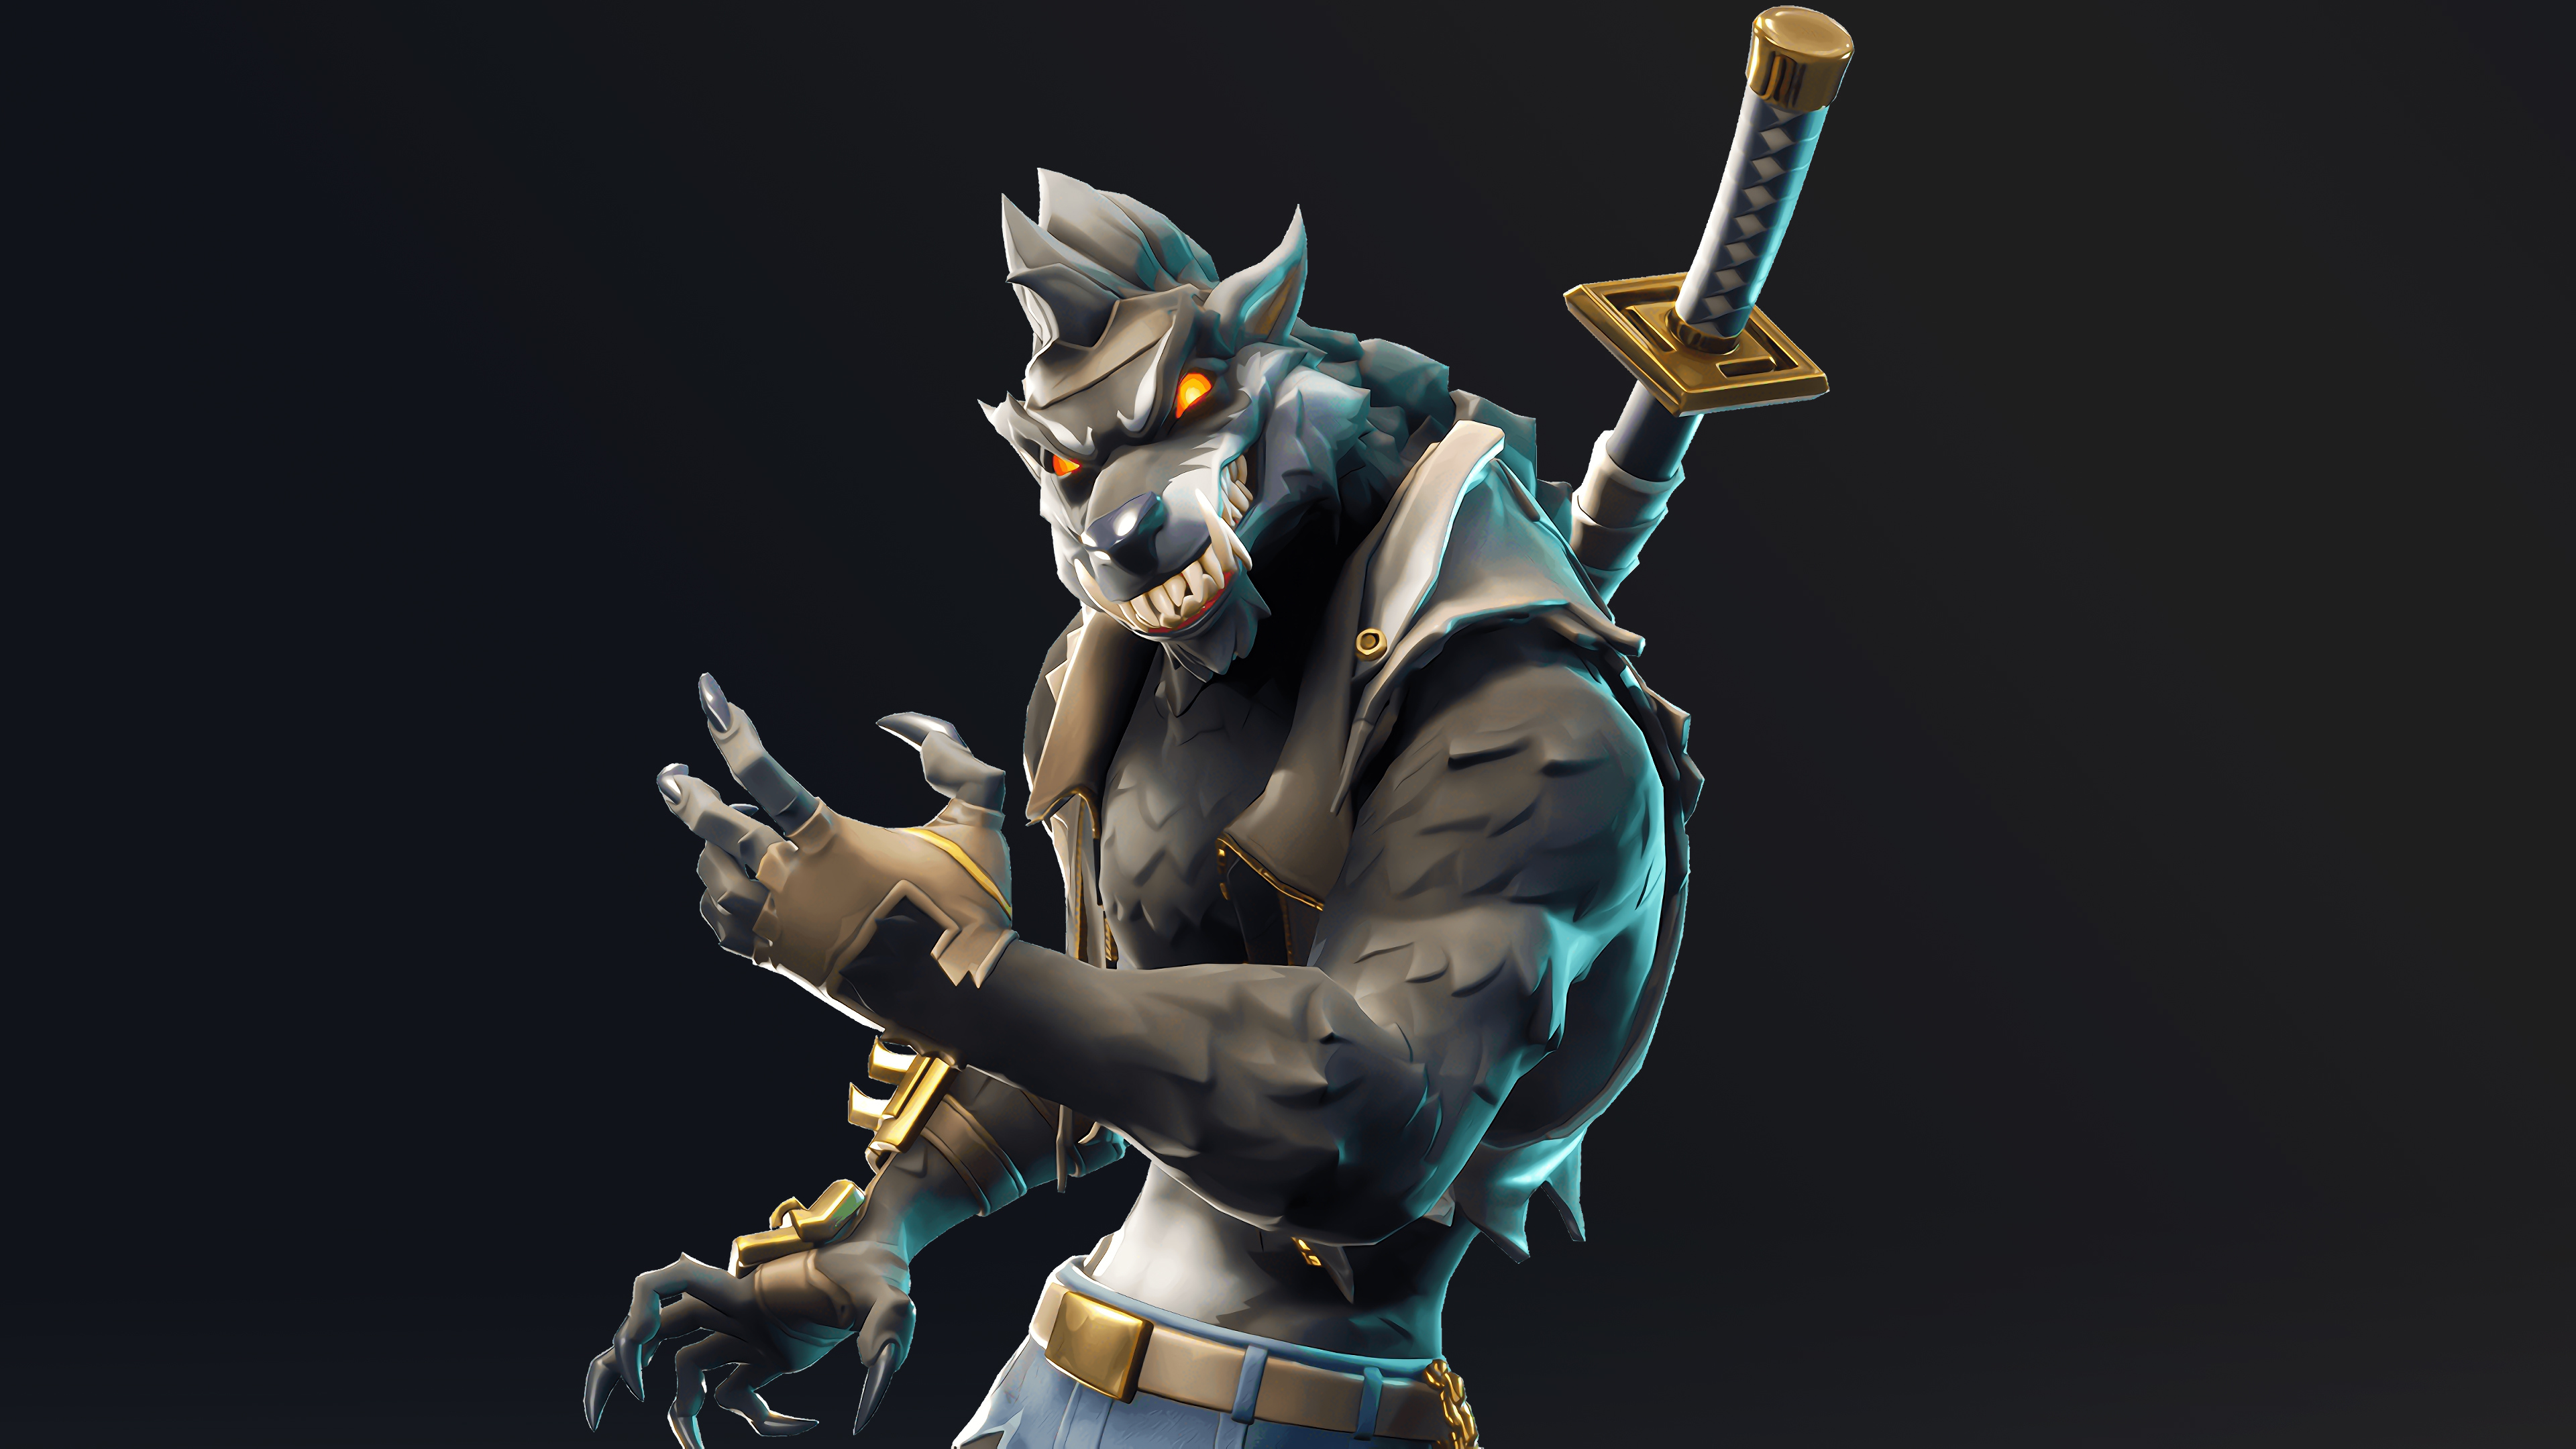 Fortnite Season 7 Hd Games 4k Wallpapers Images Backgrounds. Fortnite Dire  Outfits Fortnite Skins